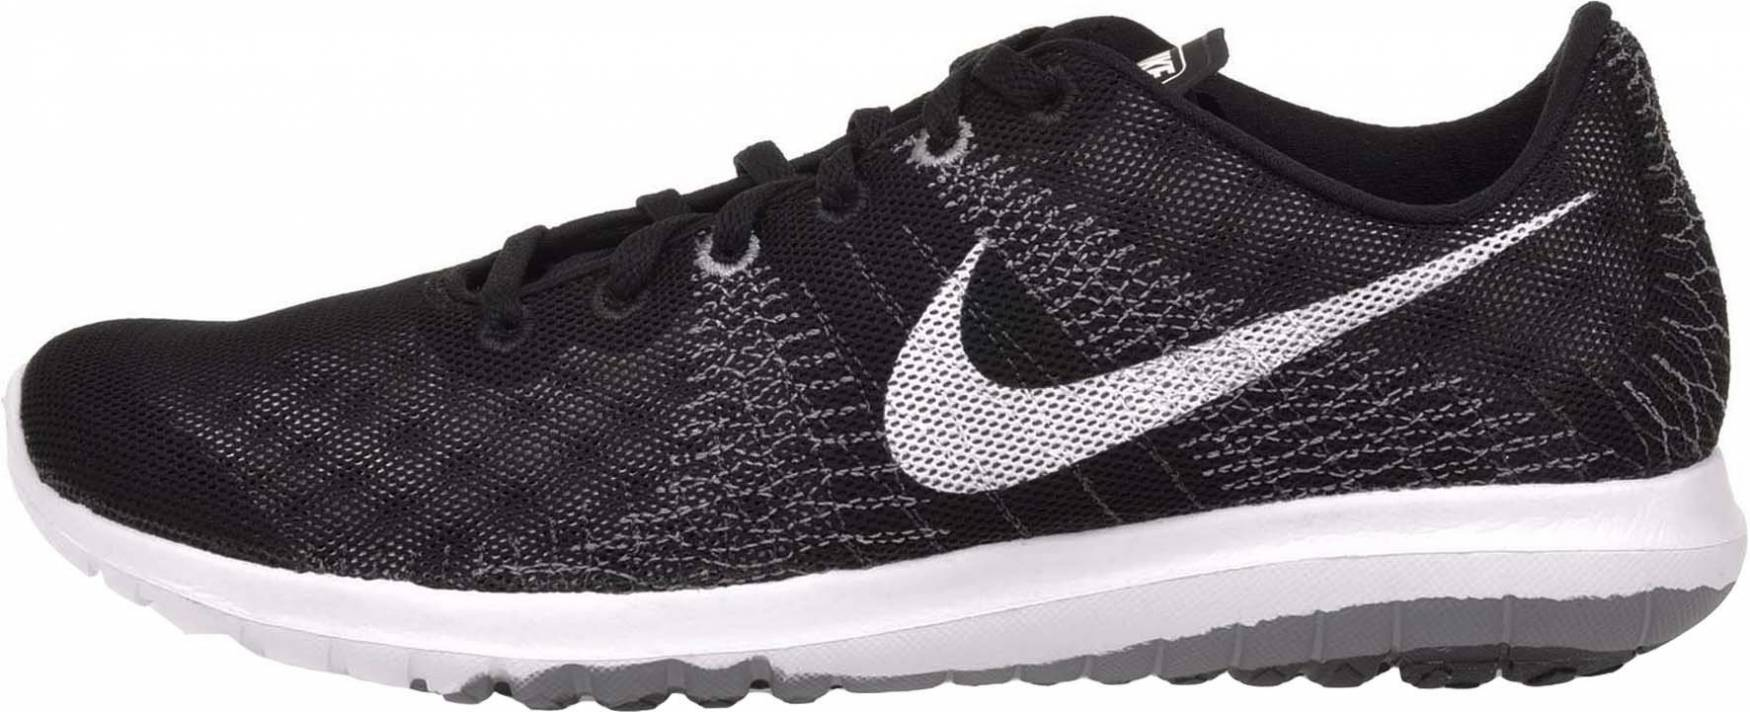 Only $82 + Review of Nike Flex Fury